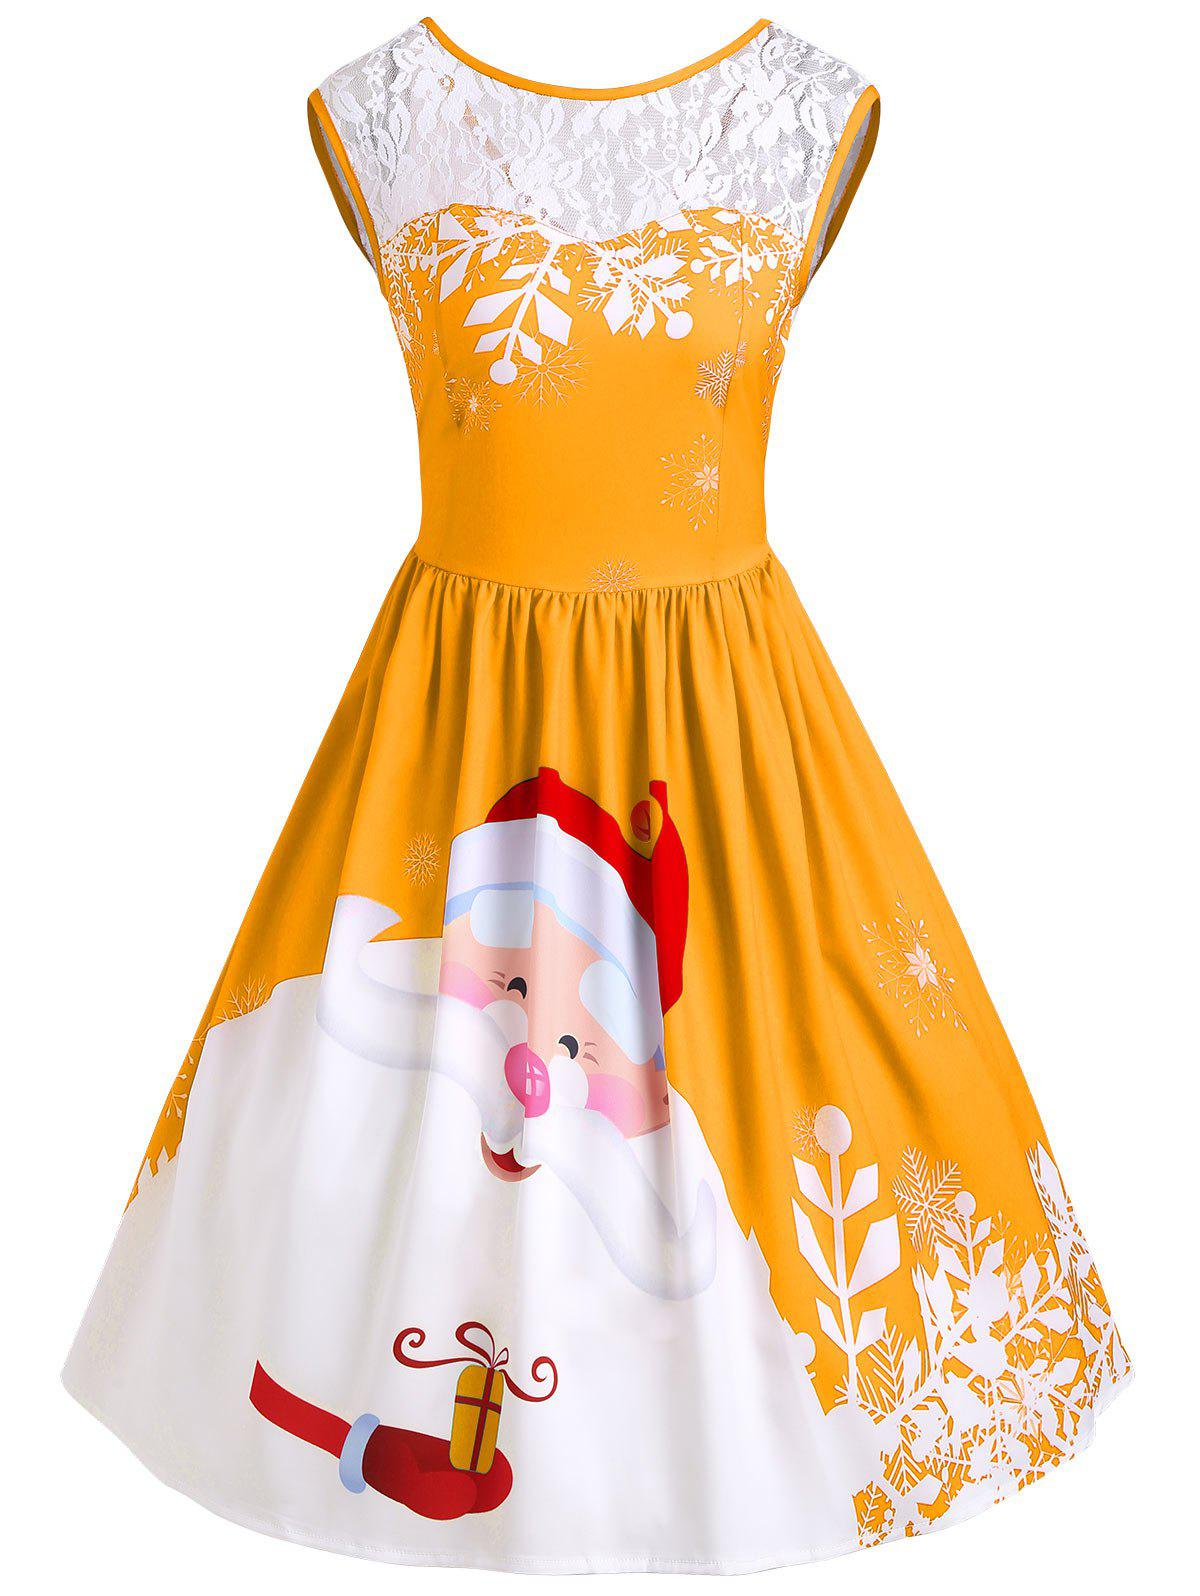 Christmas Santa Claus Print Lace Insert Party DressWOMEN<br><br>Size: 2XL; Color: CITRUS; Style: Vintage; Material: Polyester,Spandex; Silhouette: A-Line; Dresses Length: Knee-Length; Neckline: Round Collar; Sleeve Length: Sleeveless; Pattern Type: Patchwork,Print; With Belt: No; Season: Fall,Spring; Weight: 0.3500kg; Package Contents: 1 x Dress;